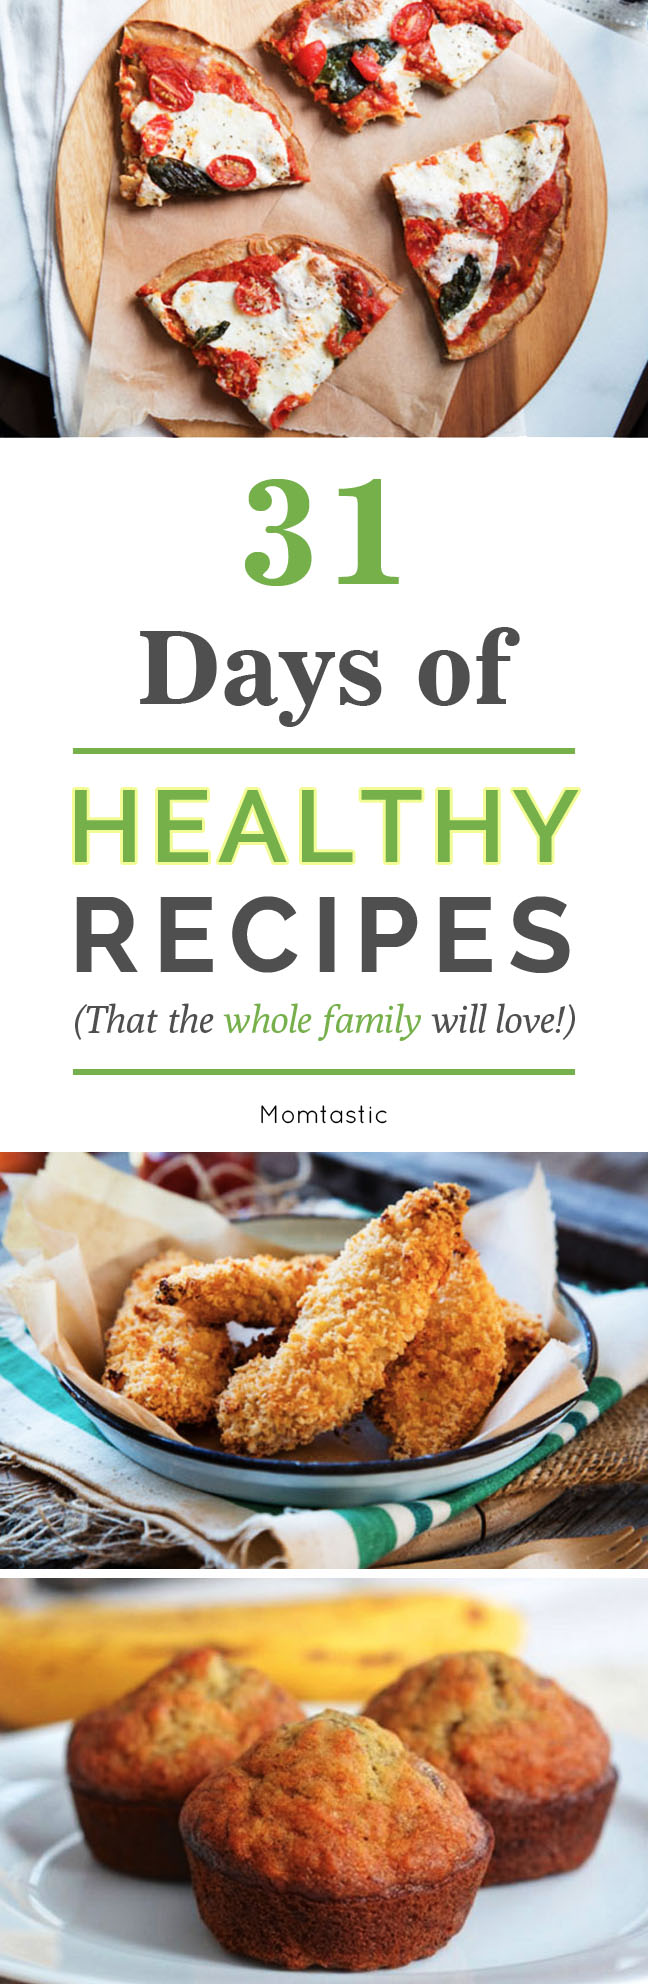 31_Days_of_Healthy_recipes